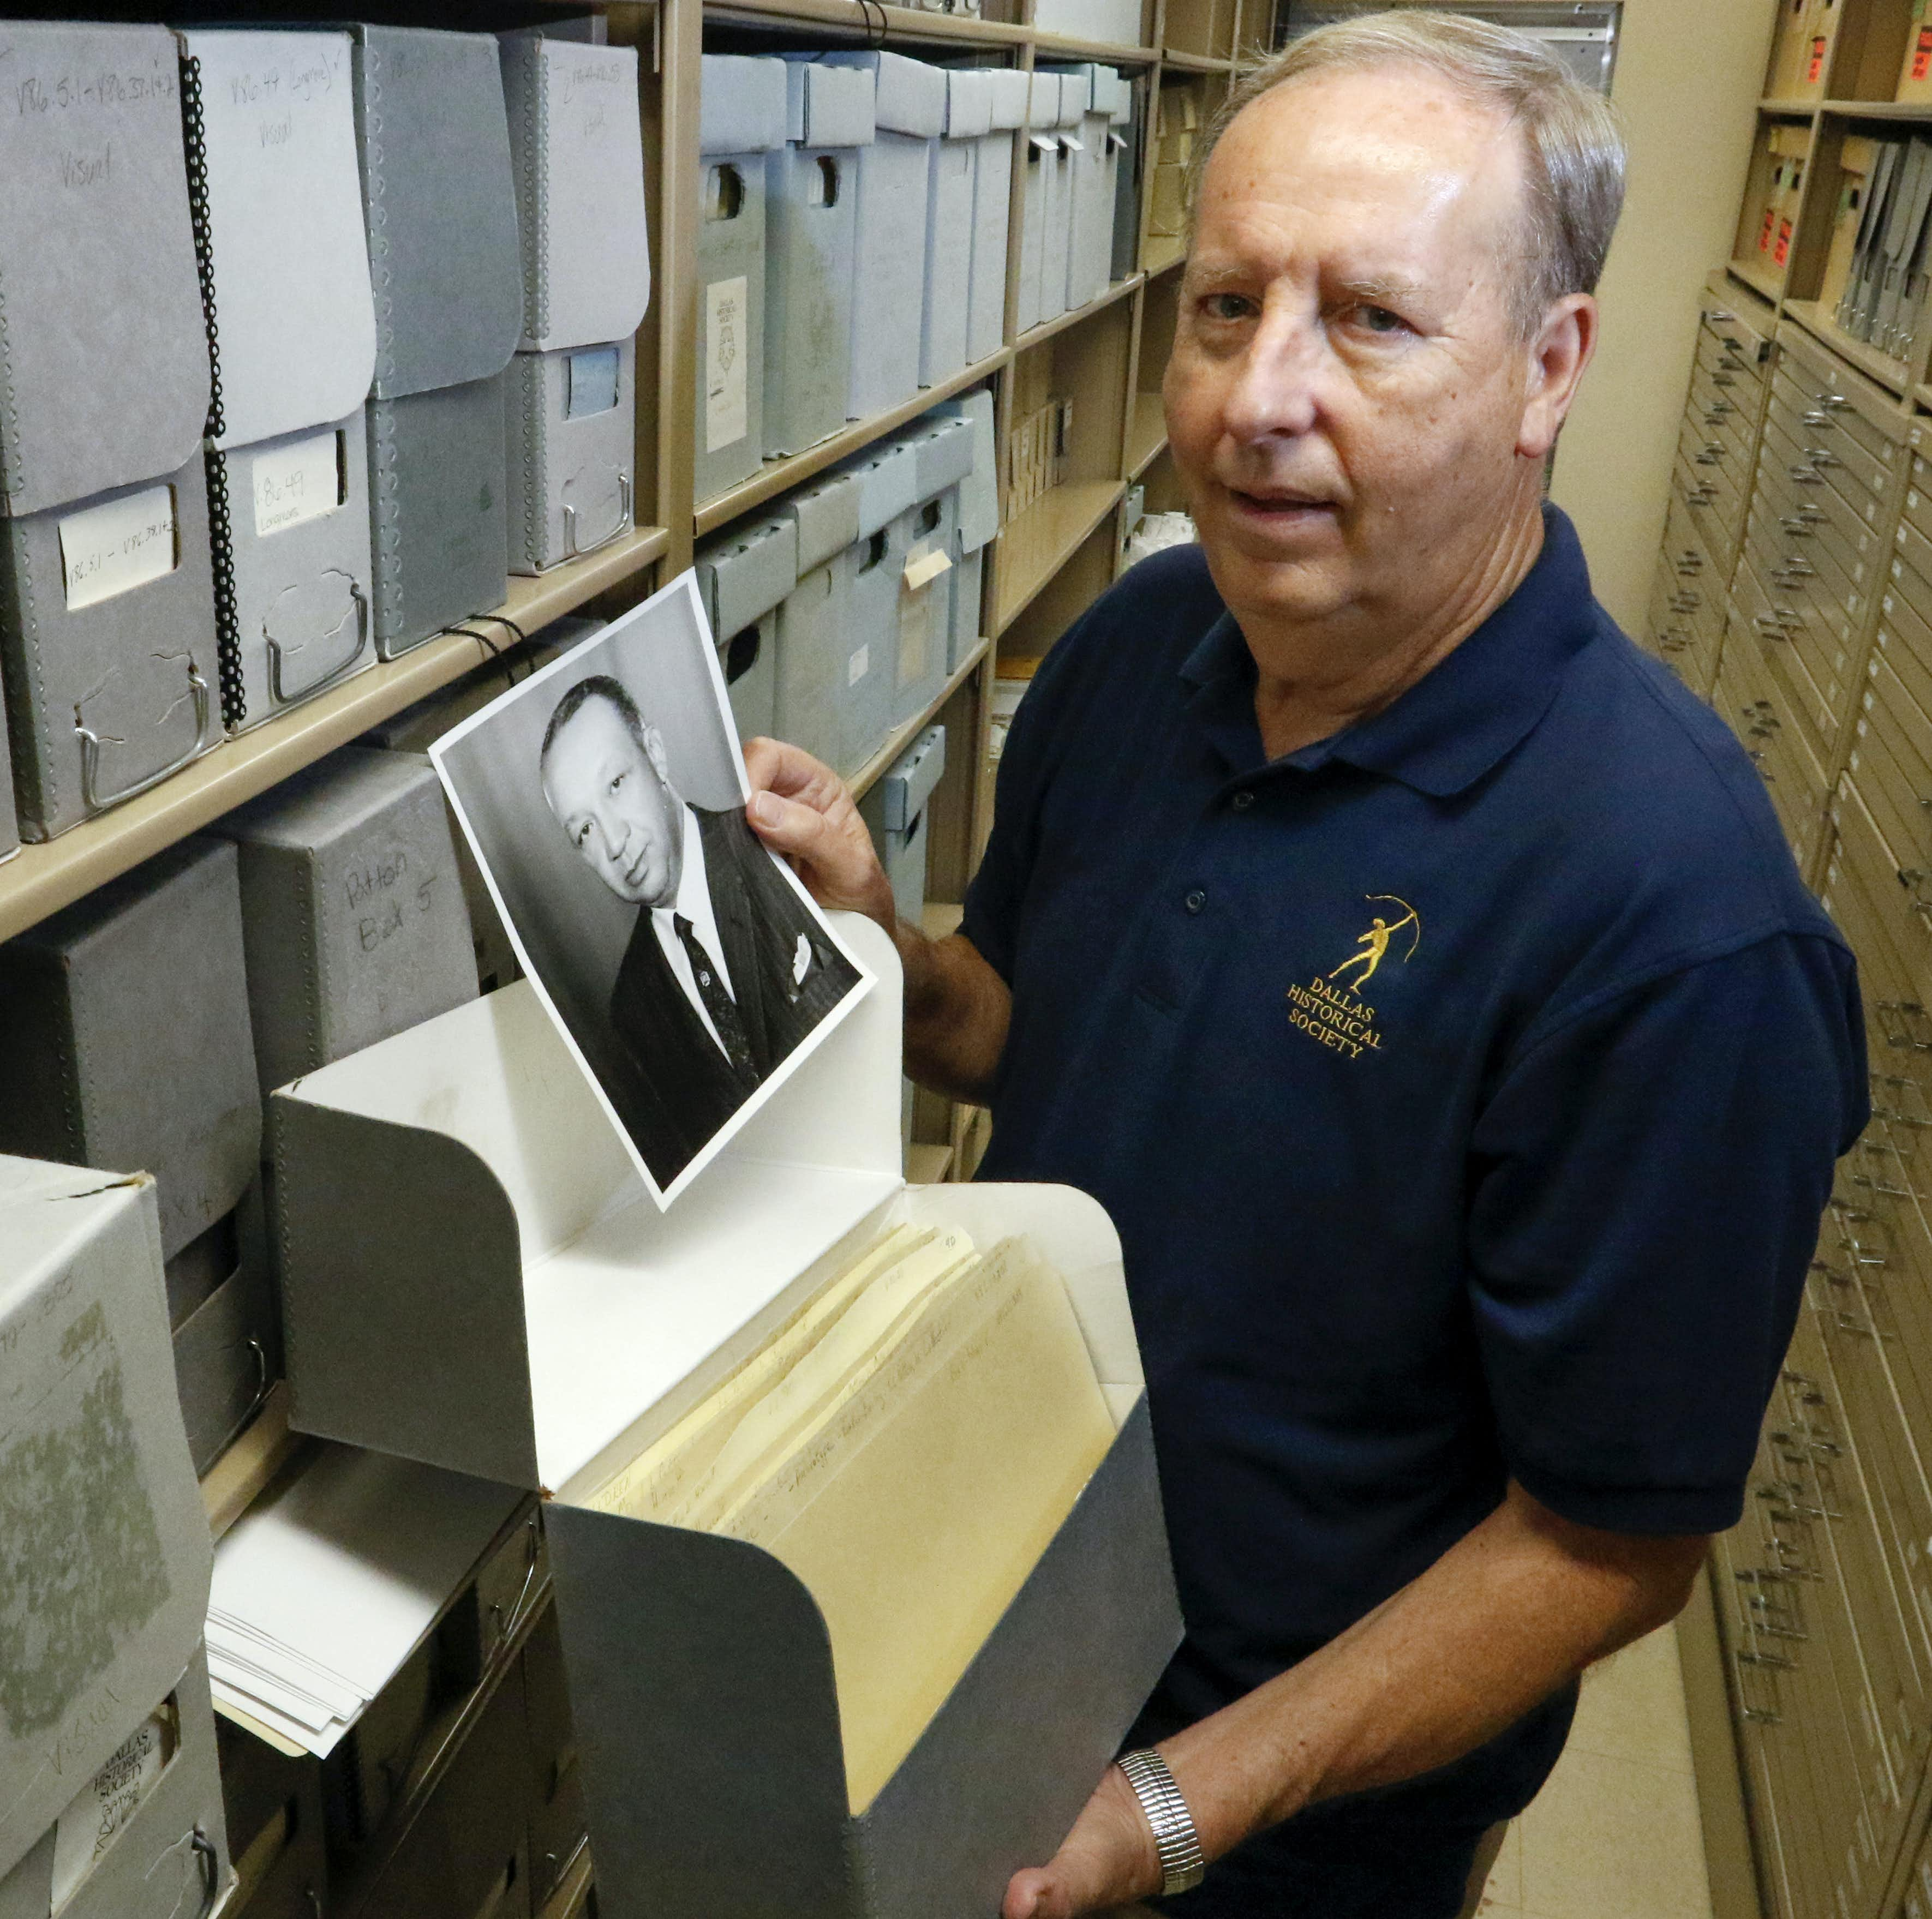 Retiree Leonard Davis, 70, volunteers in the Dallas Historical Society photo archives at Fair Park once a week. The photo he is holding is of Don L. Patton Jr., a former civic leader and principal at Booker T. Washington High School.(Ron Baselice/Staff Photographer)